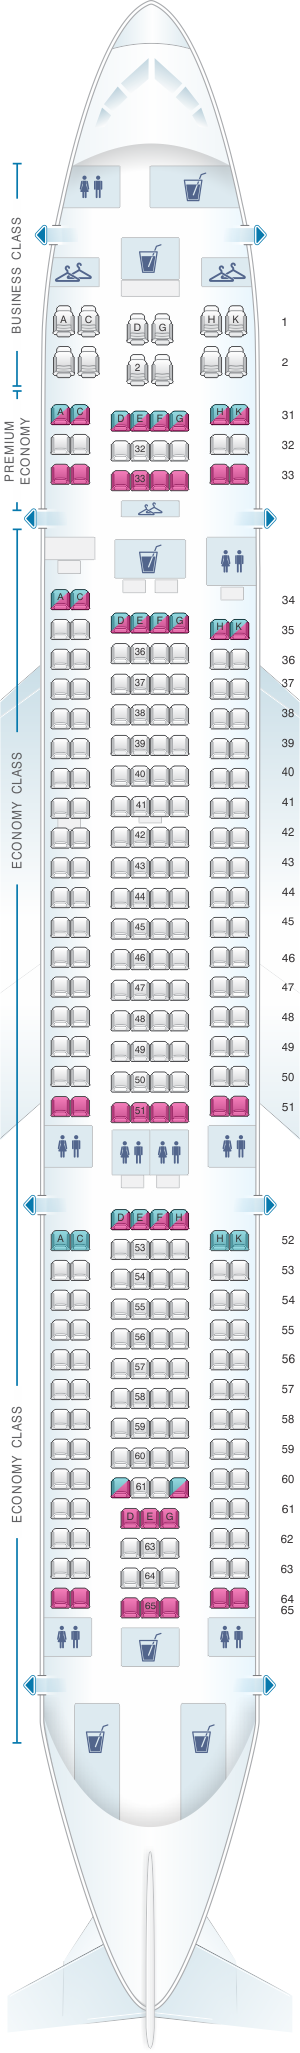 Seat Map China Southern Airlines Airbus A33G Air transat